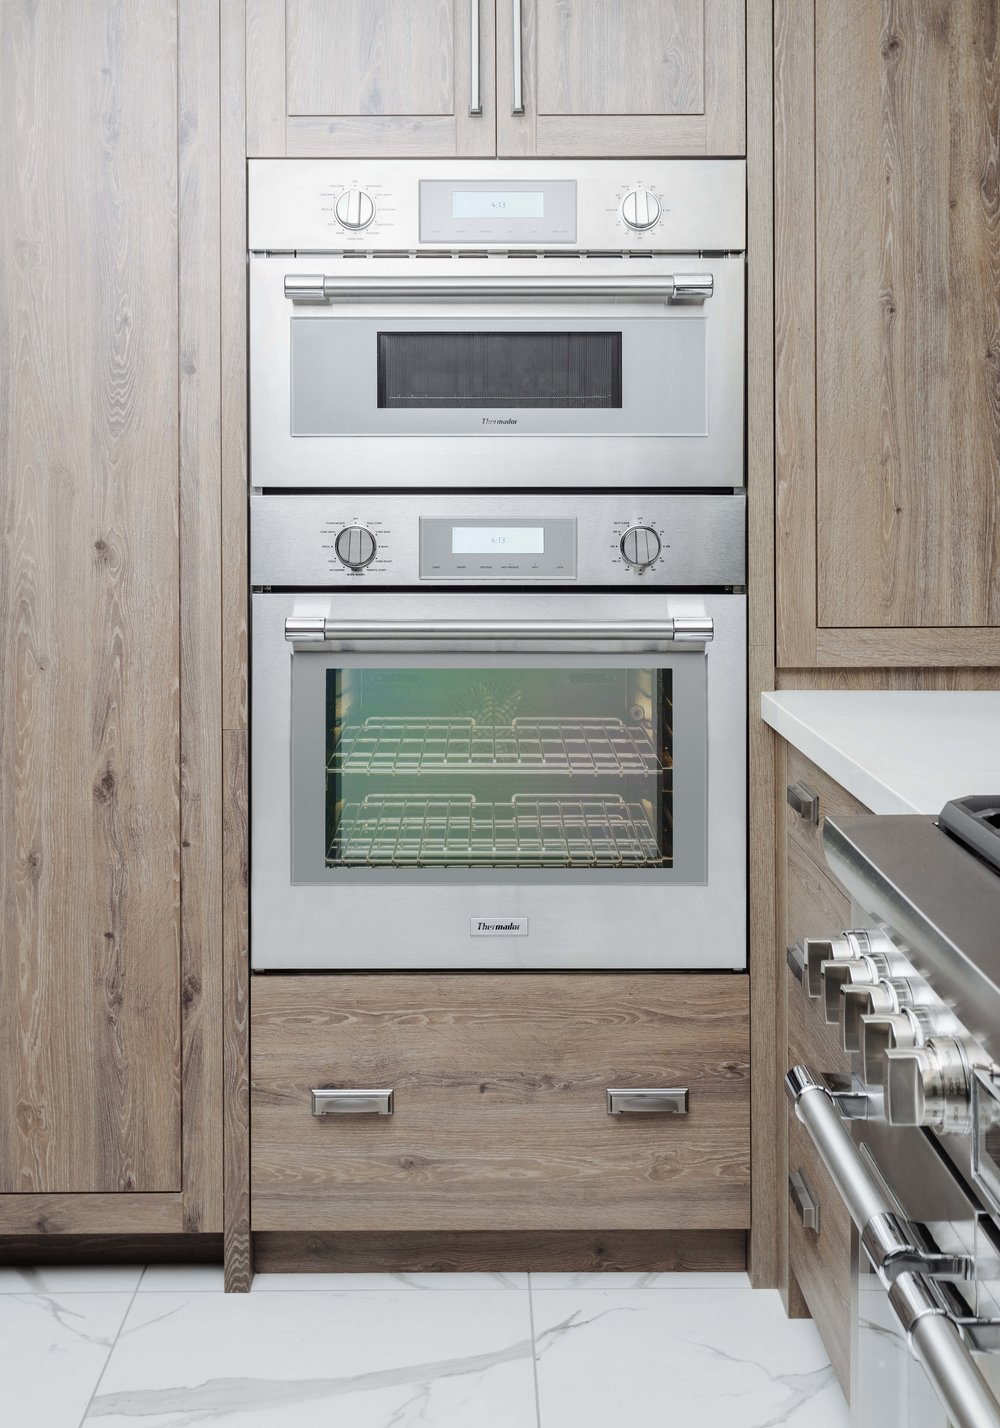 Thermador's professional collection offers: steam, speed and convection in one!!